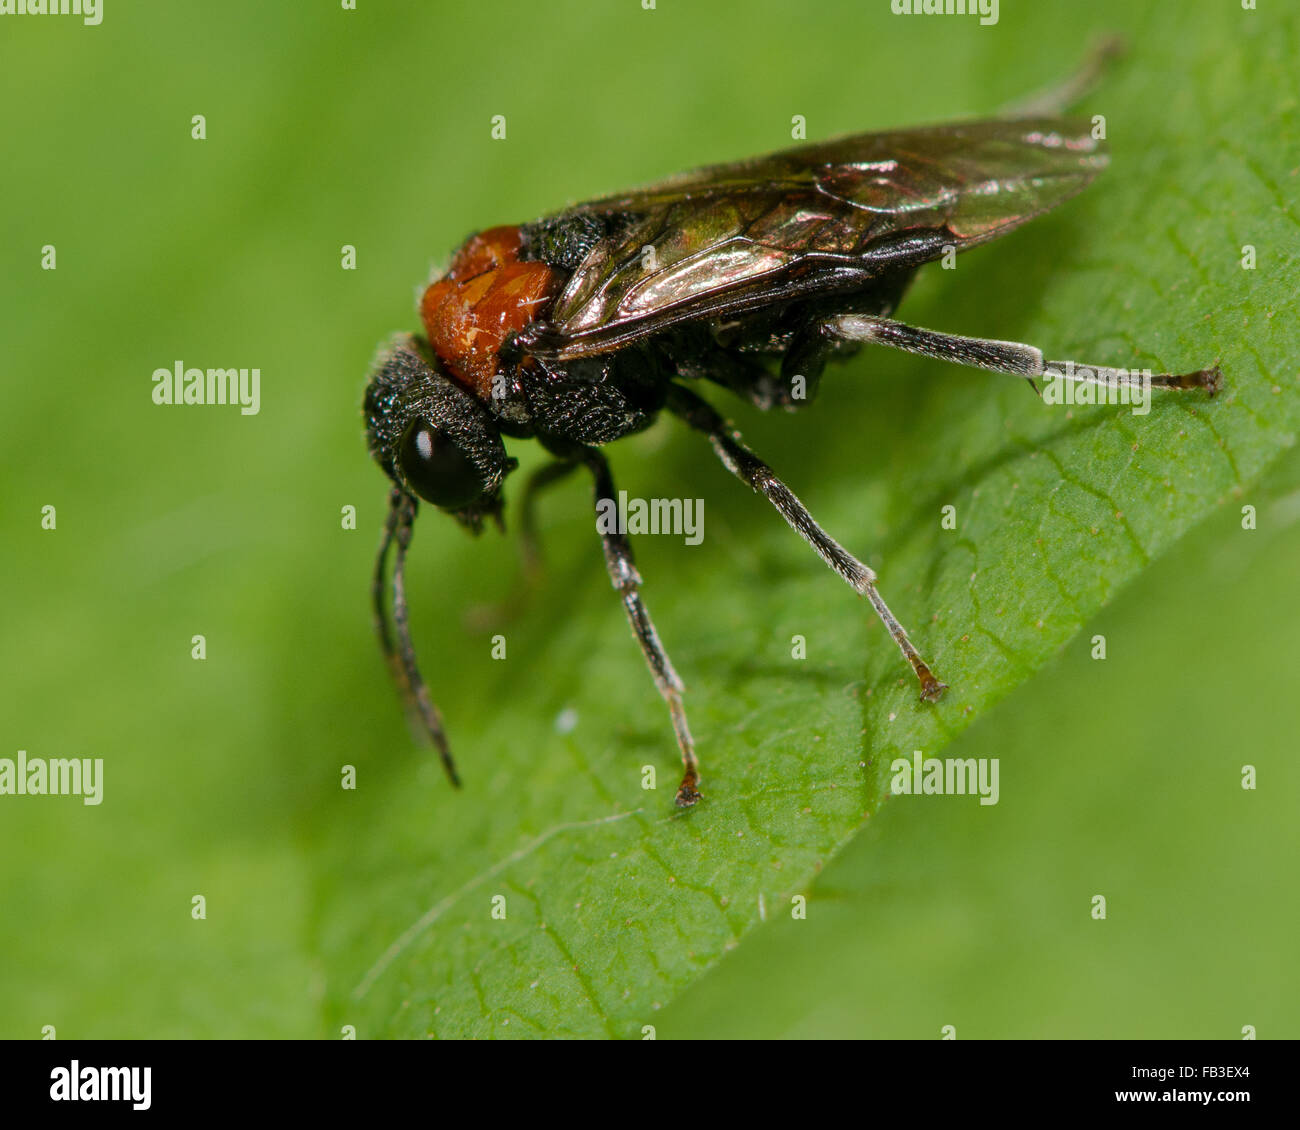 Alder sawfly (Eriocampa ovata) adult. A Hymenopteran insect in the family Tenthredinidae - Stock Image